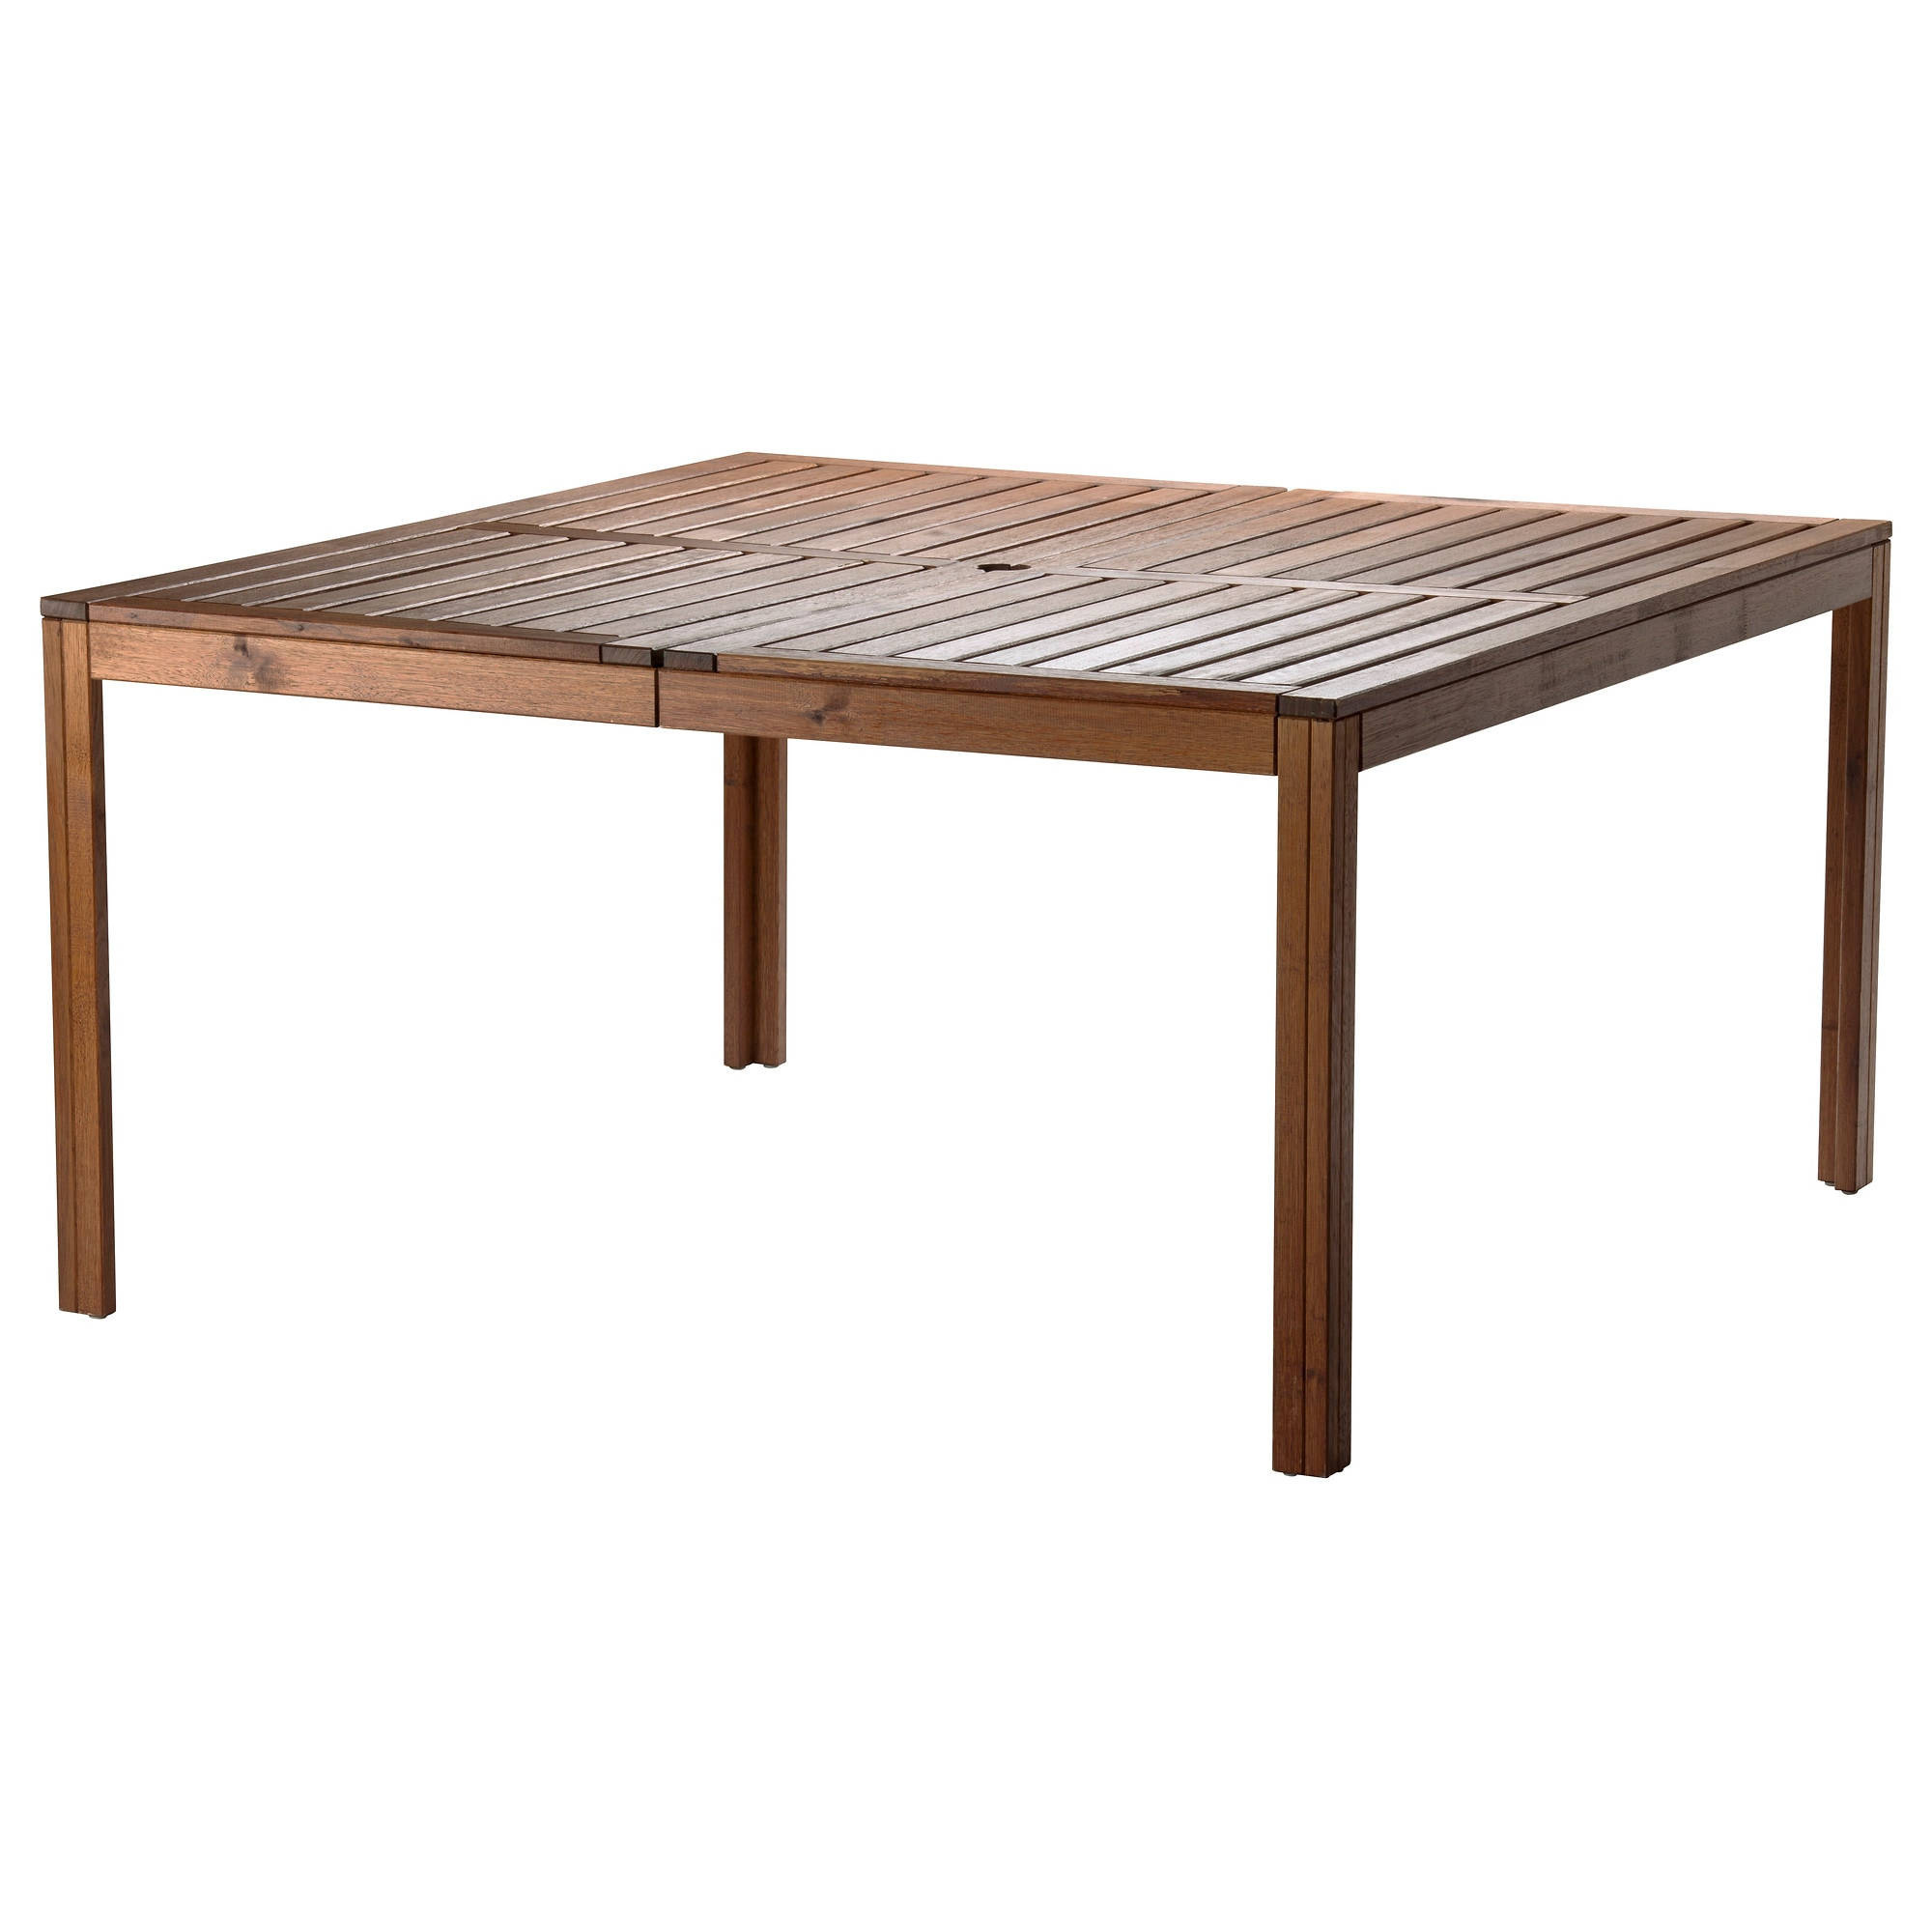 ÄPPLARÖ Table, Outdoor   IKEA